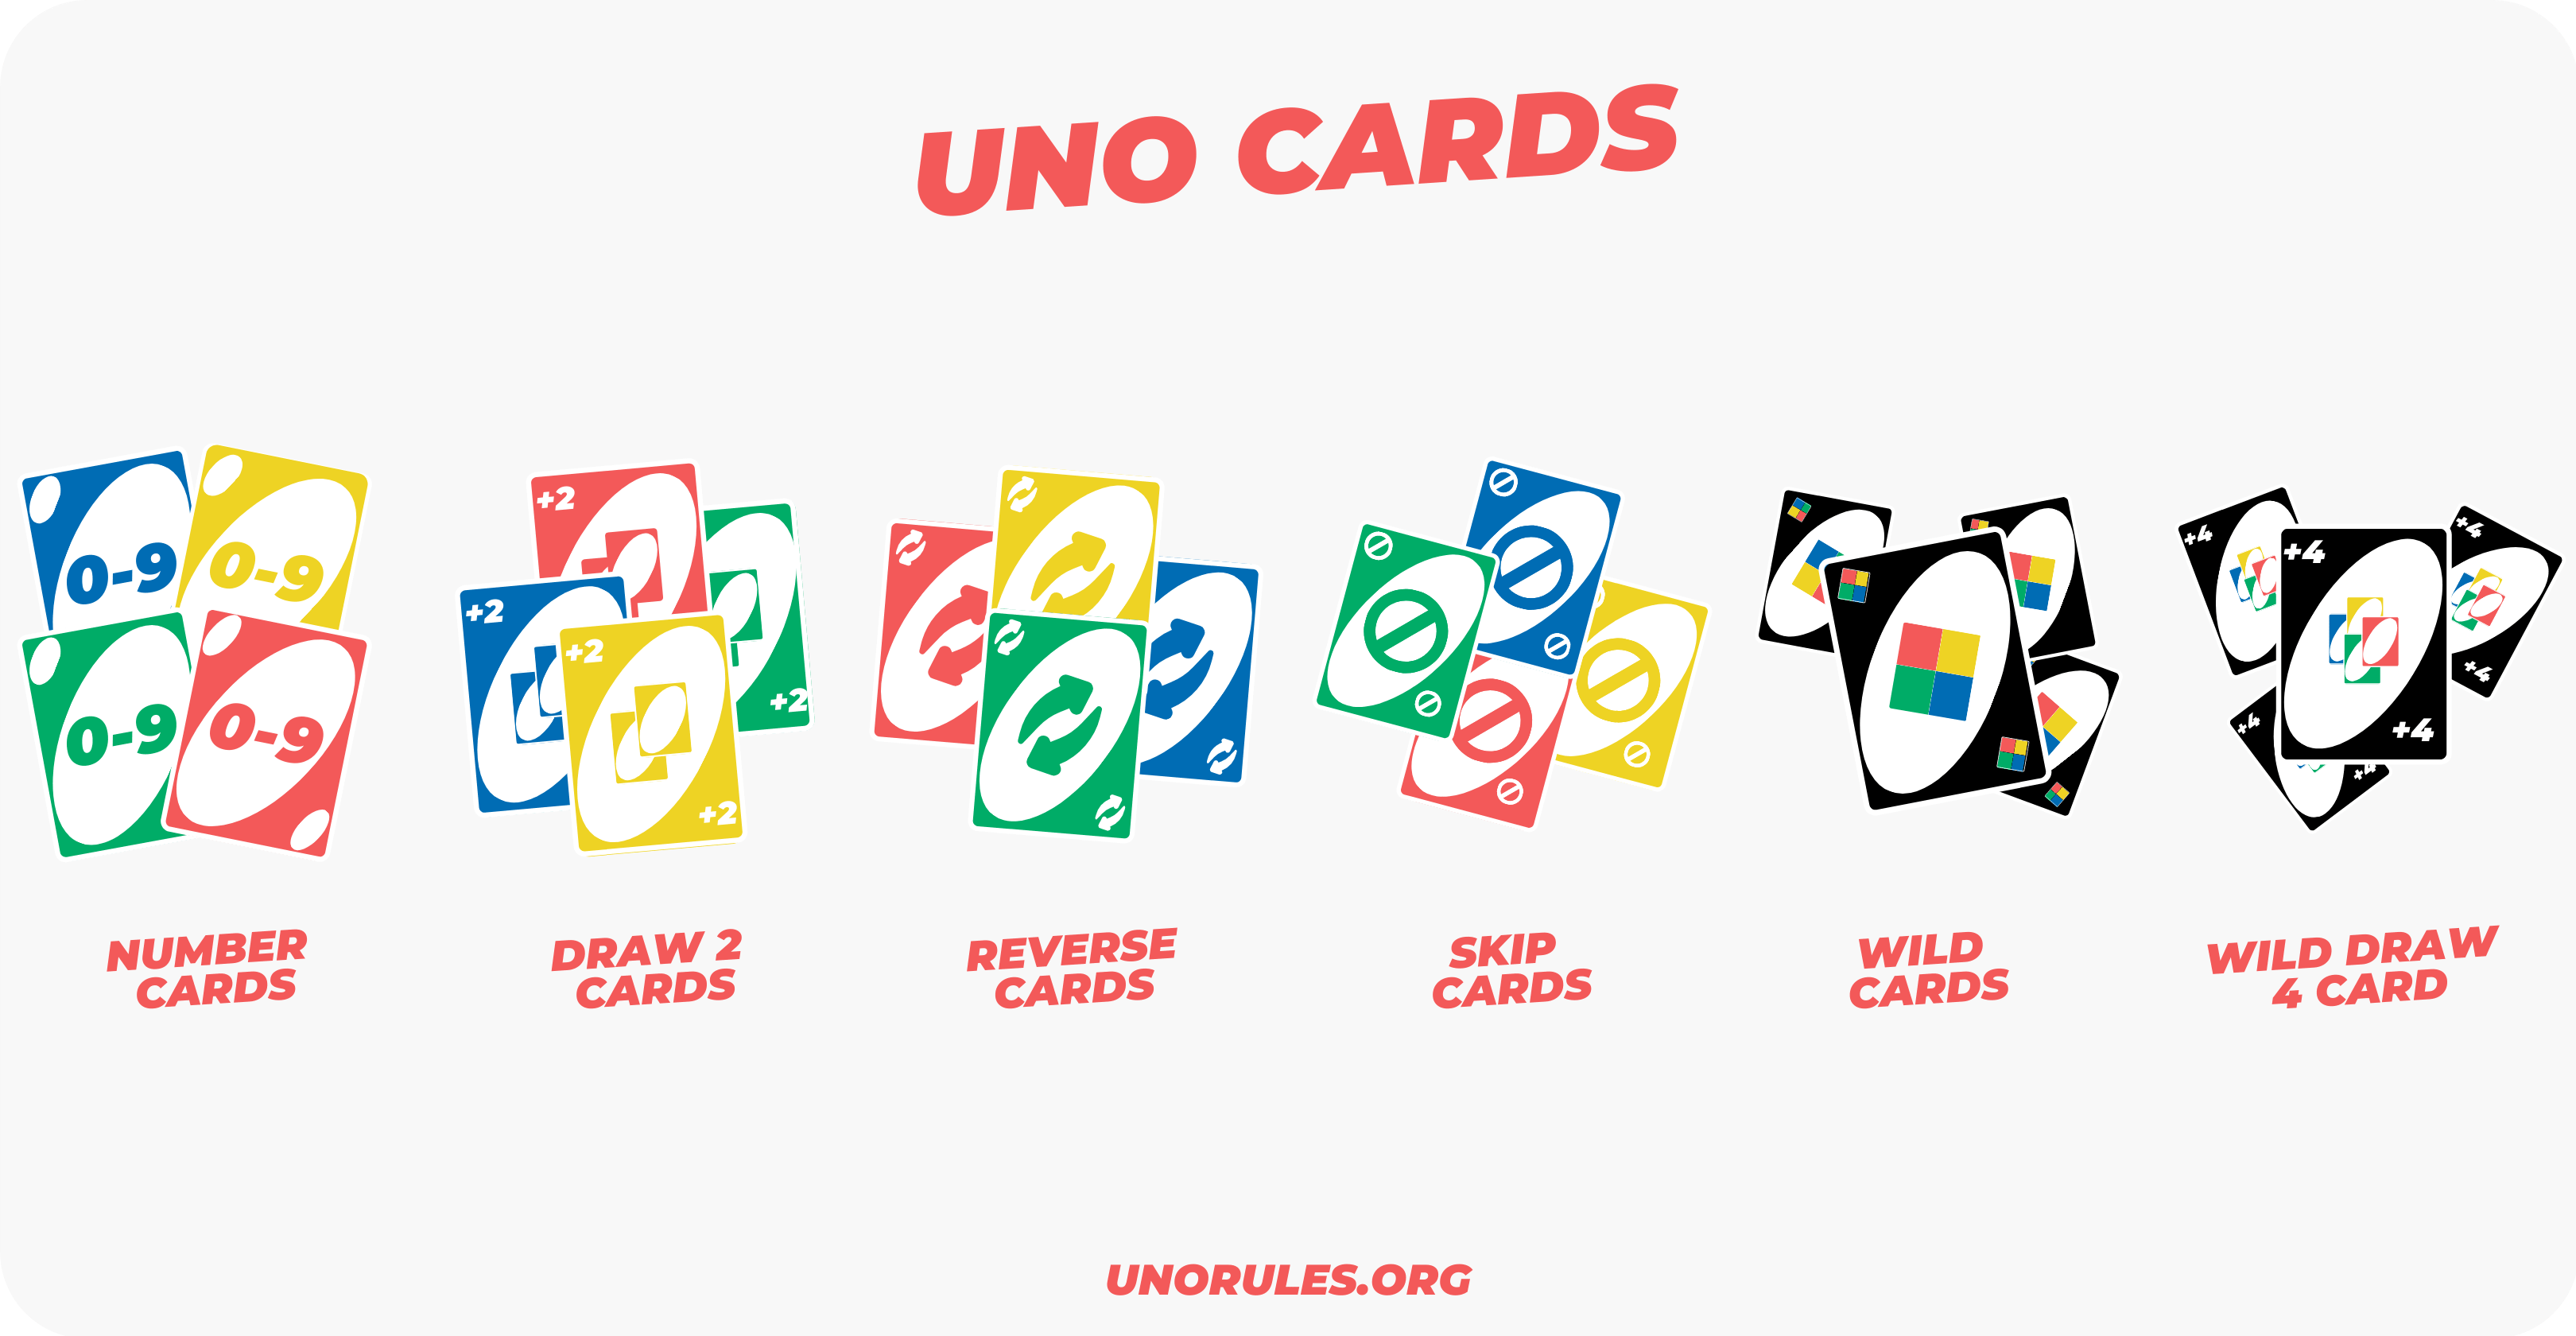 The Uno cards - how many cards in uno